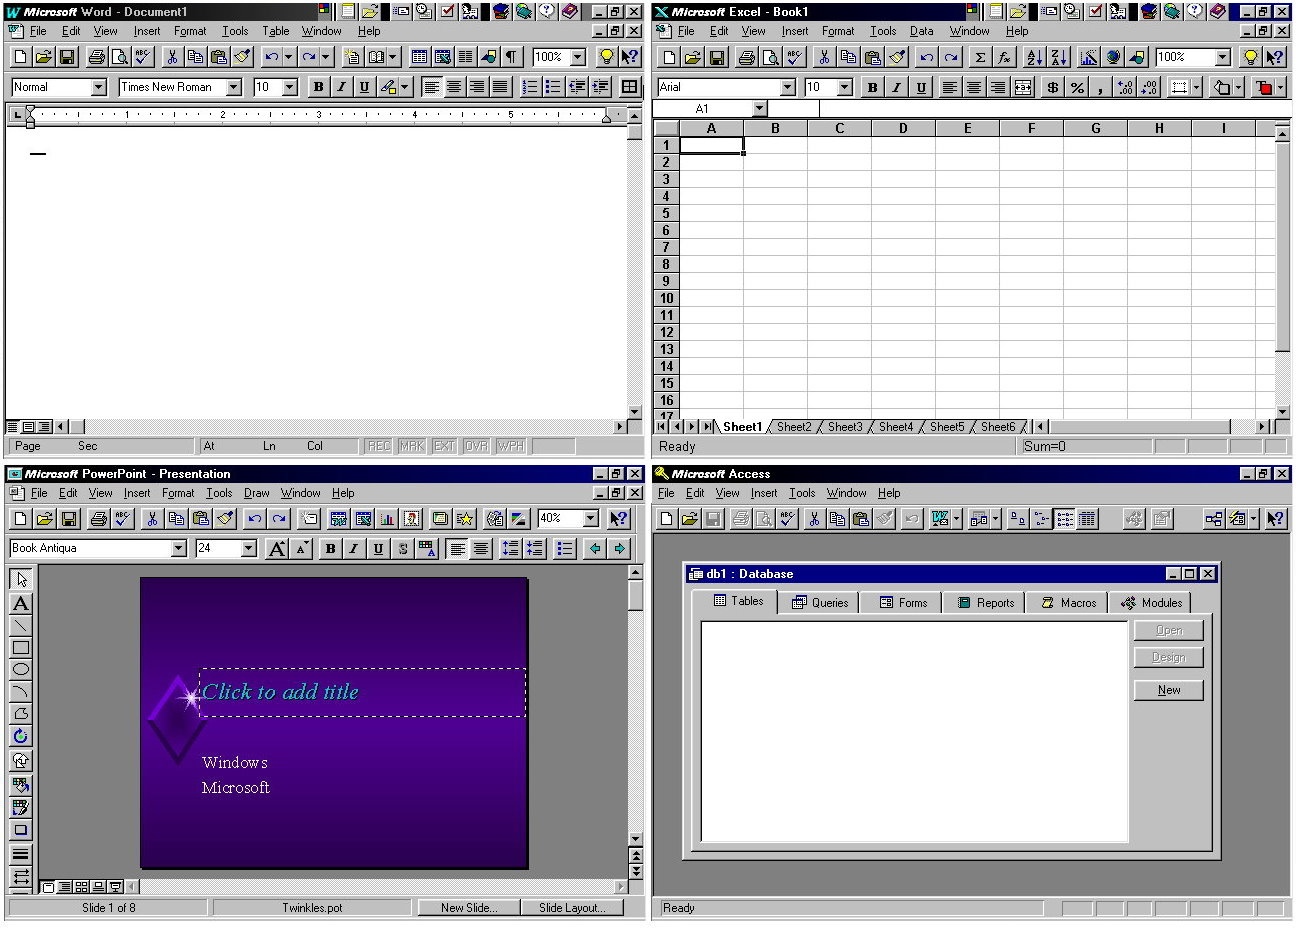 download microsoft works spreadsheet viewer free download